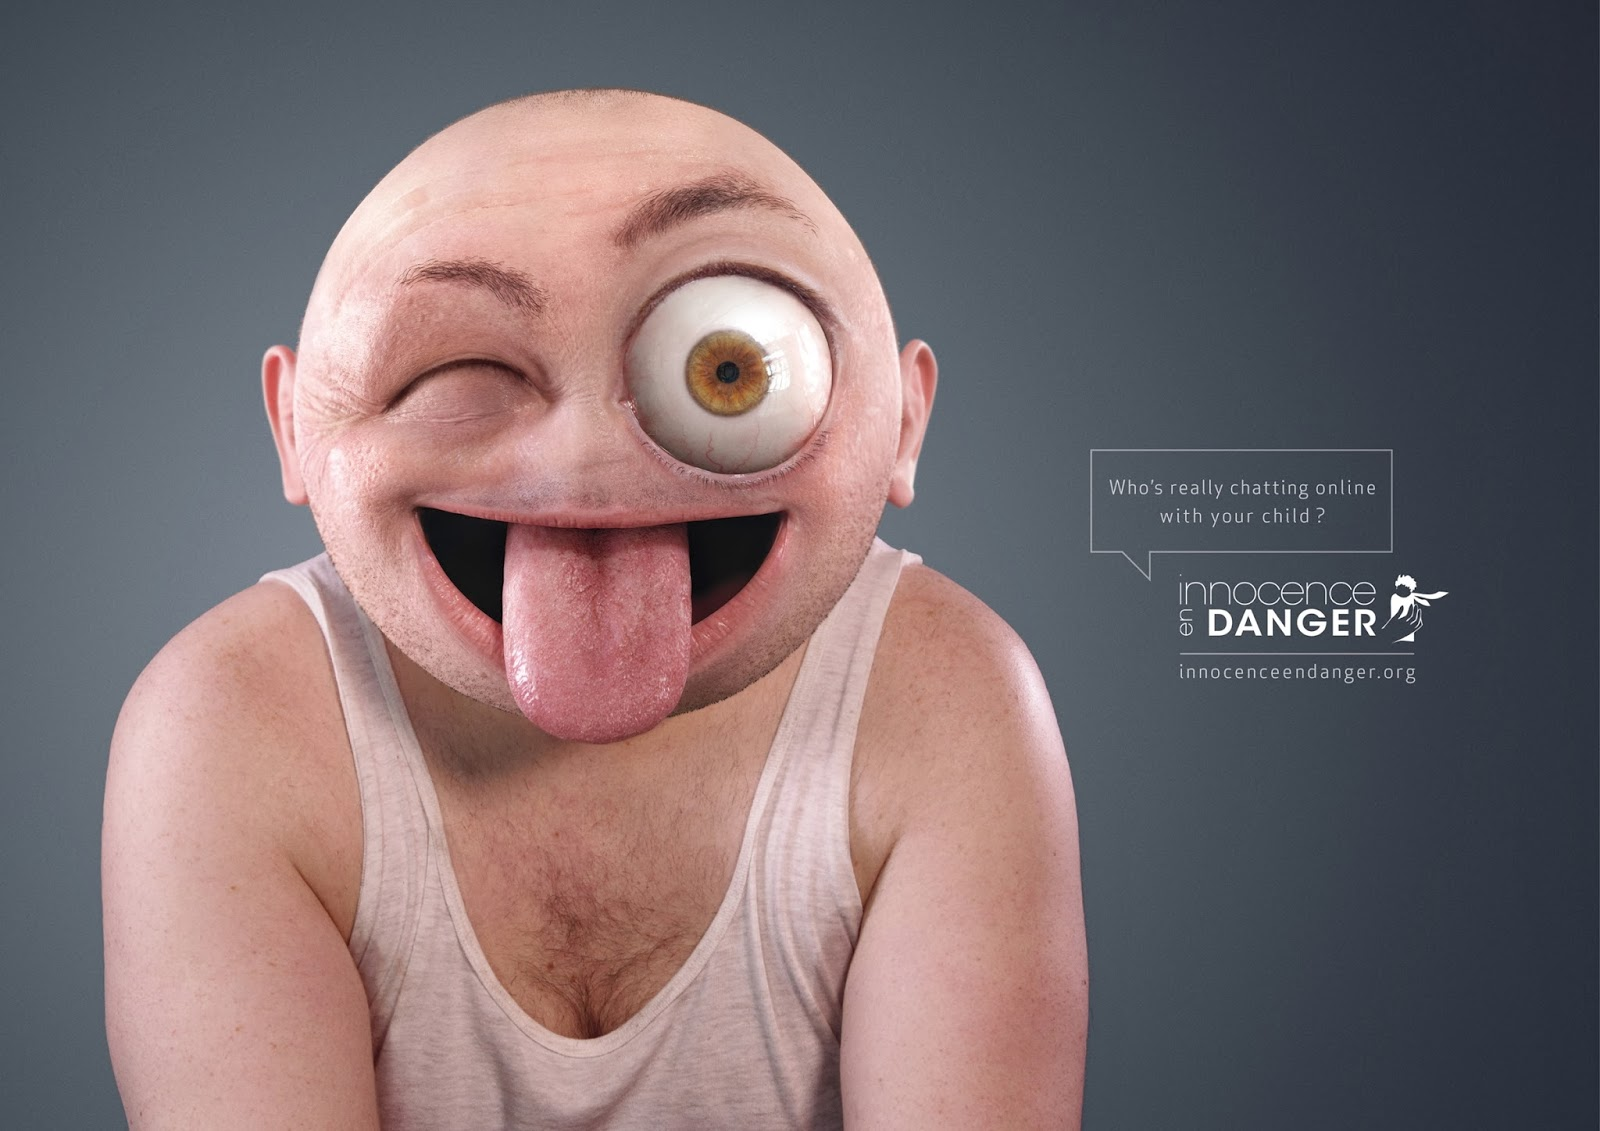 Innocence en Danger Emoticons campaign,